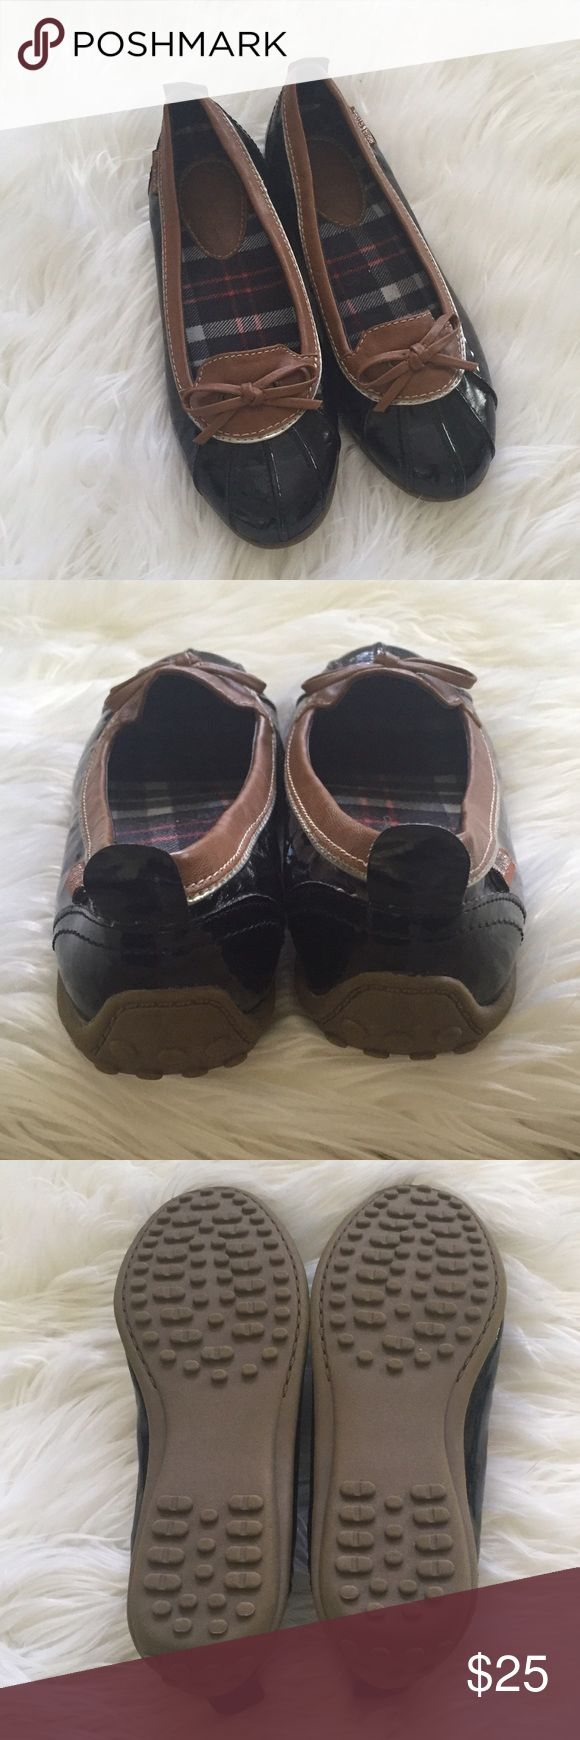 New Listing {Aqua Stop} Rain Shoes {Aqua Stop} Rain Shoes. Size: 7. Color: Black with brown trim. Never worn, in excellent condition. The perfect alternative to boots in rainy weather. Aqua Stop Shoes Flats & Loafers